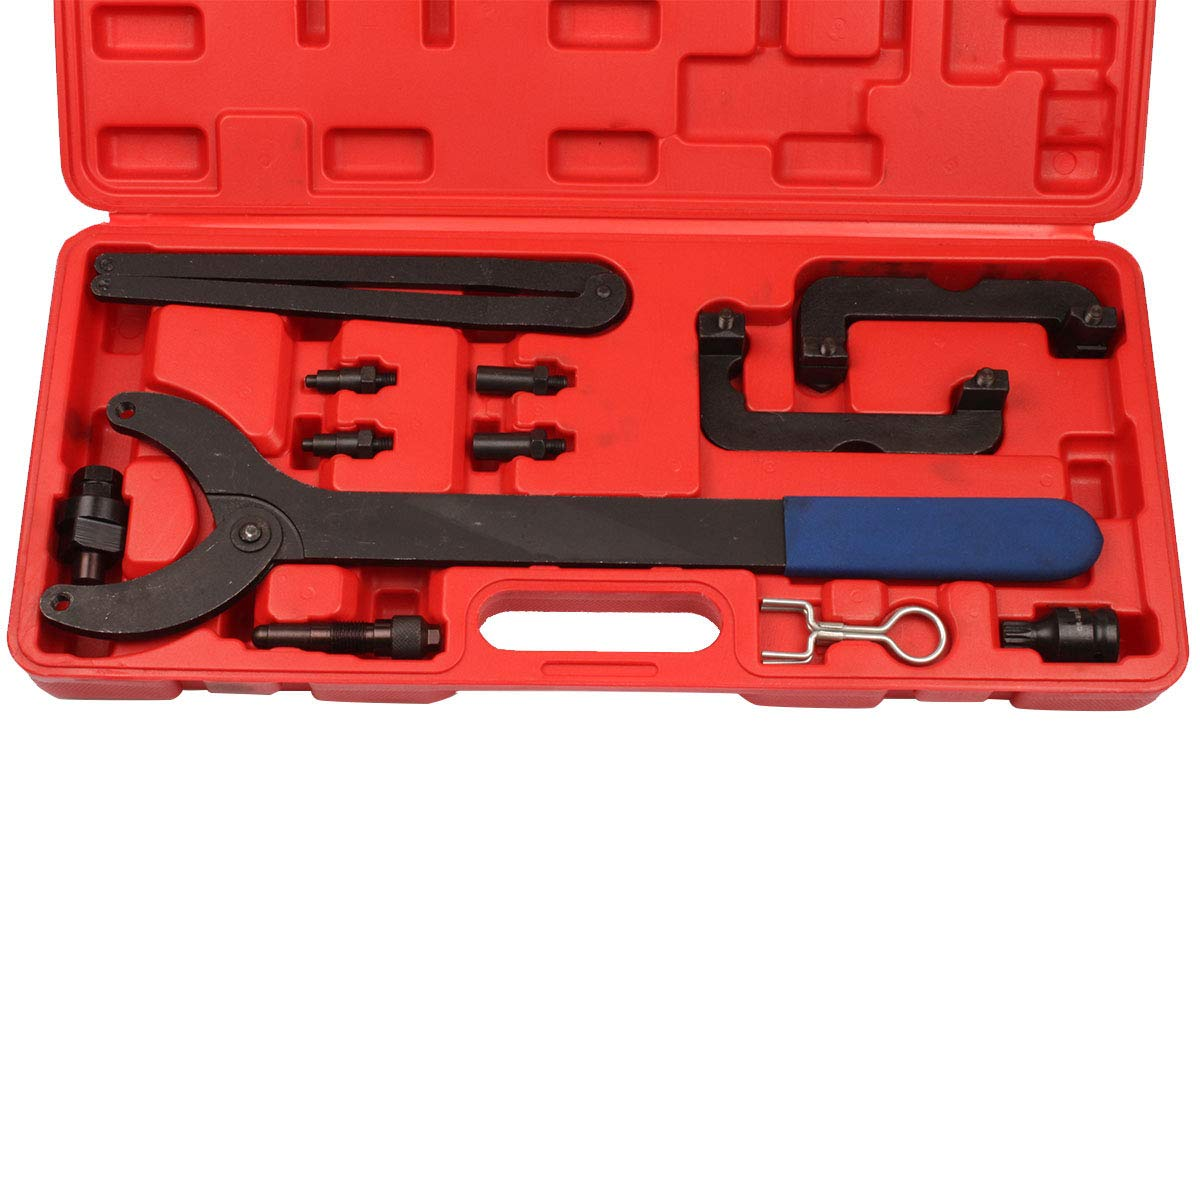 Ctool Engine Timing Tool Set for VW Audi V6 2.0/2.8/3.0T FSI Camshaft Alignment Tool by Ctool (Image #2)